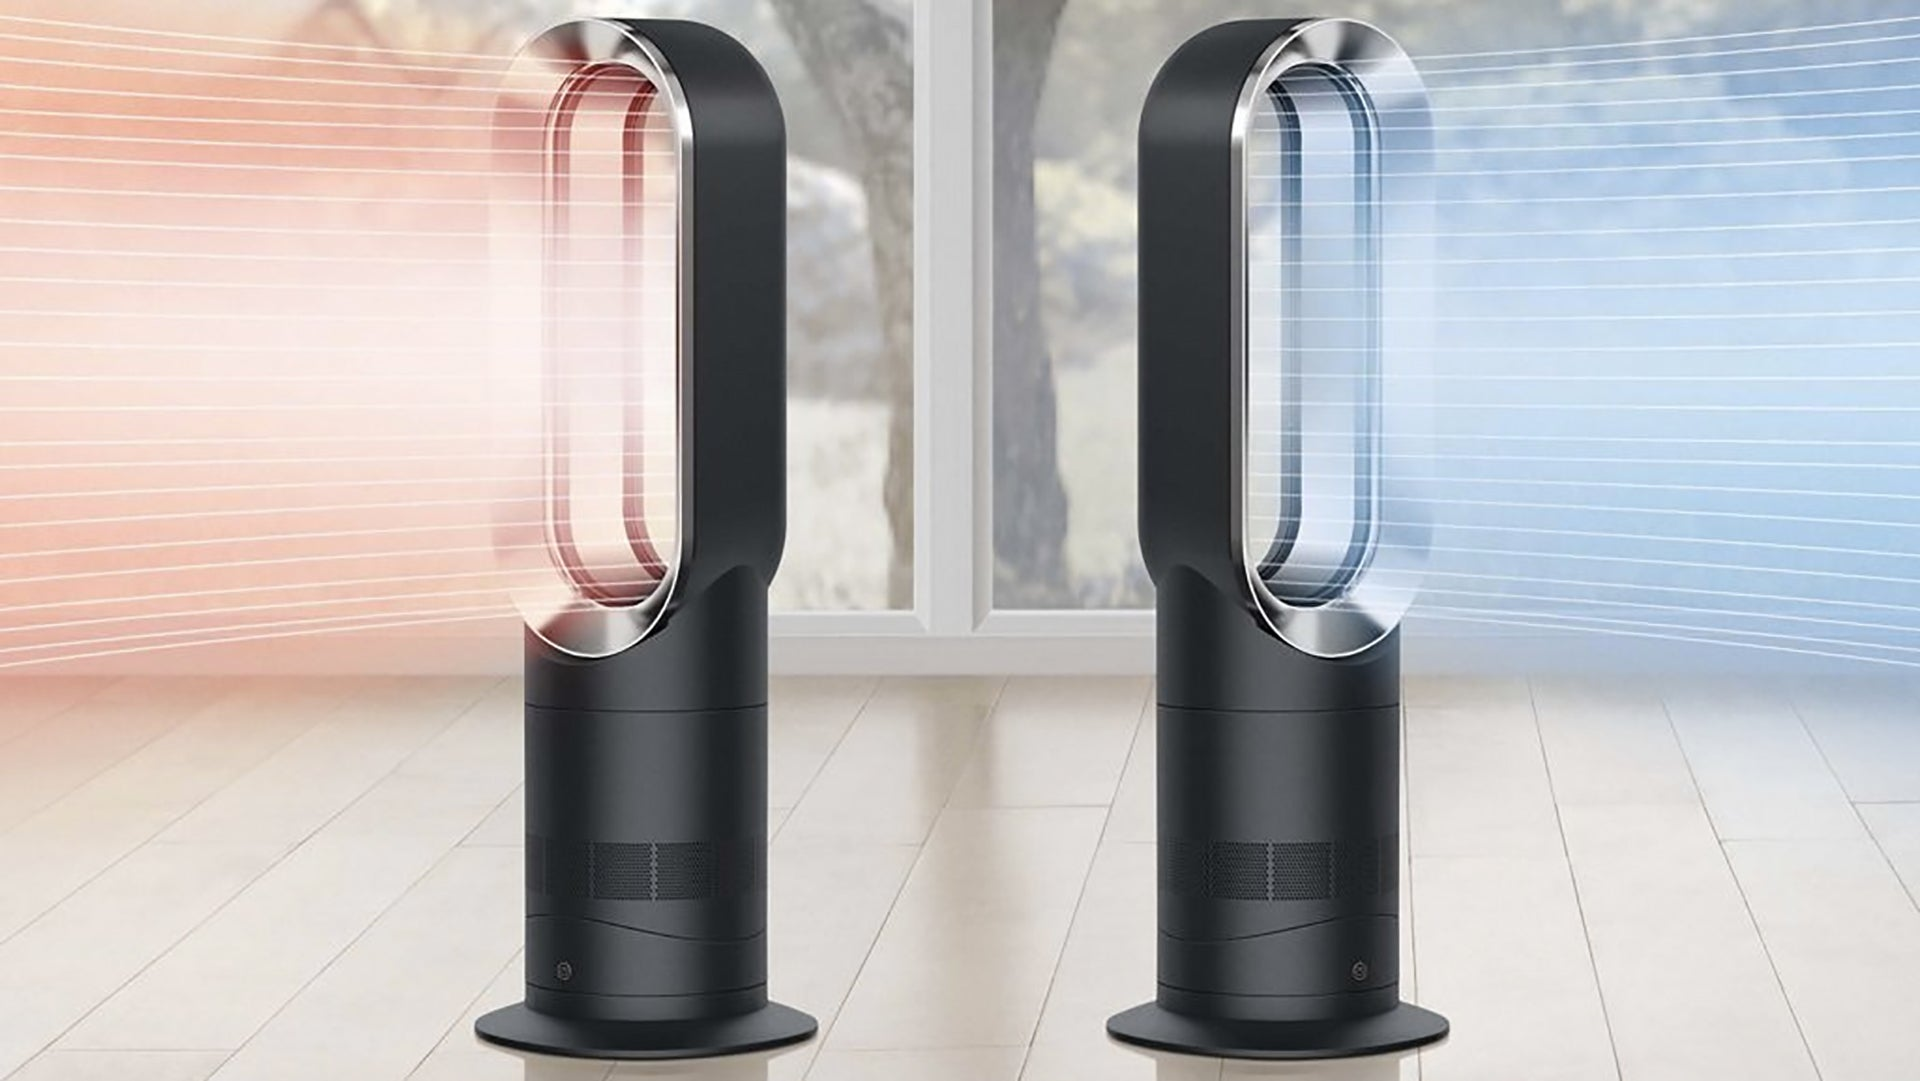 Best Fan 2020 Cooling And Purifying Fans To Beat The Heat